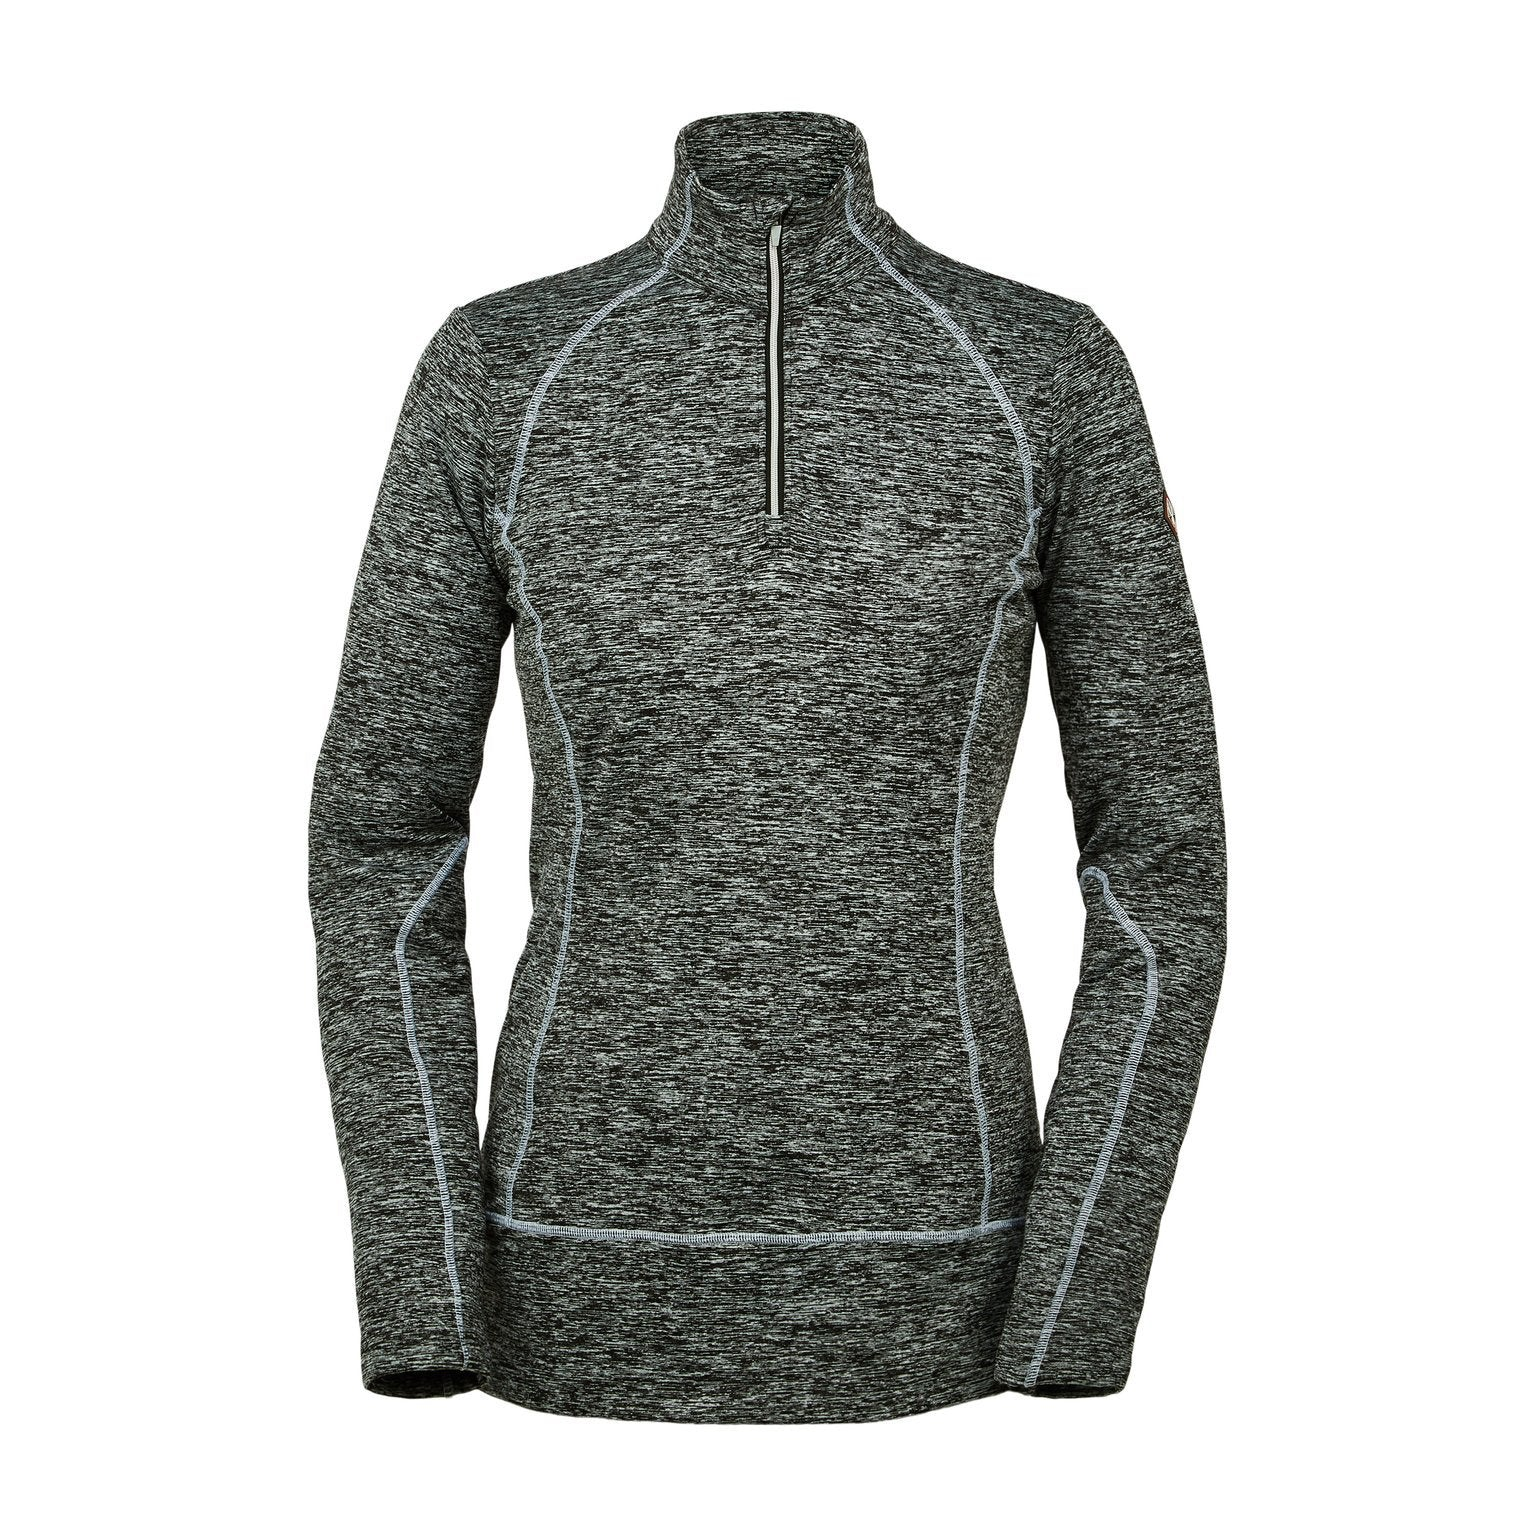 Spyder 2021 Women's ACCORD T-Zip